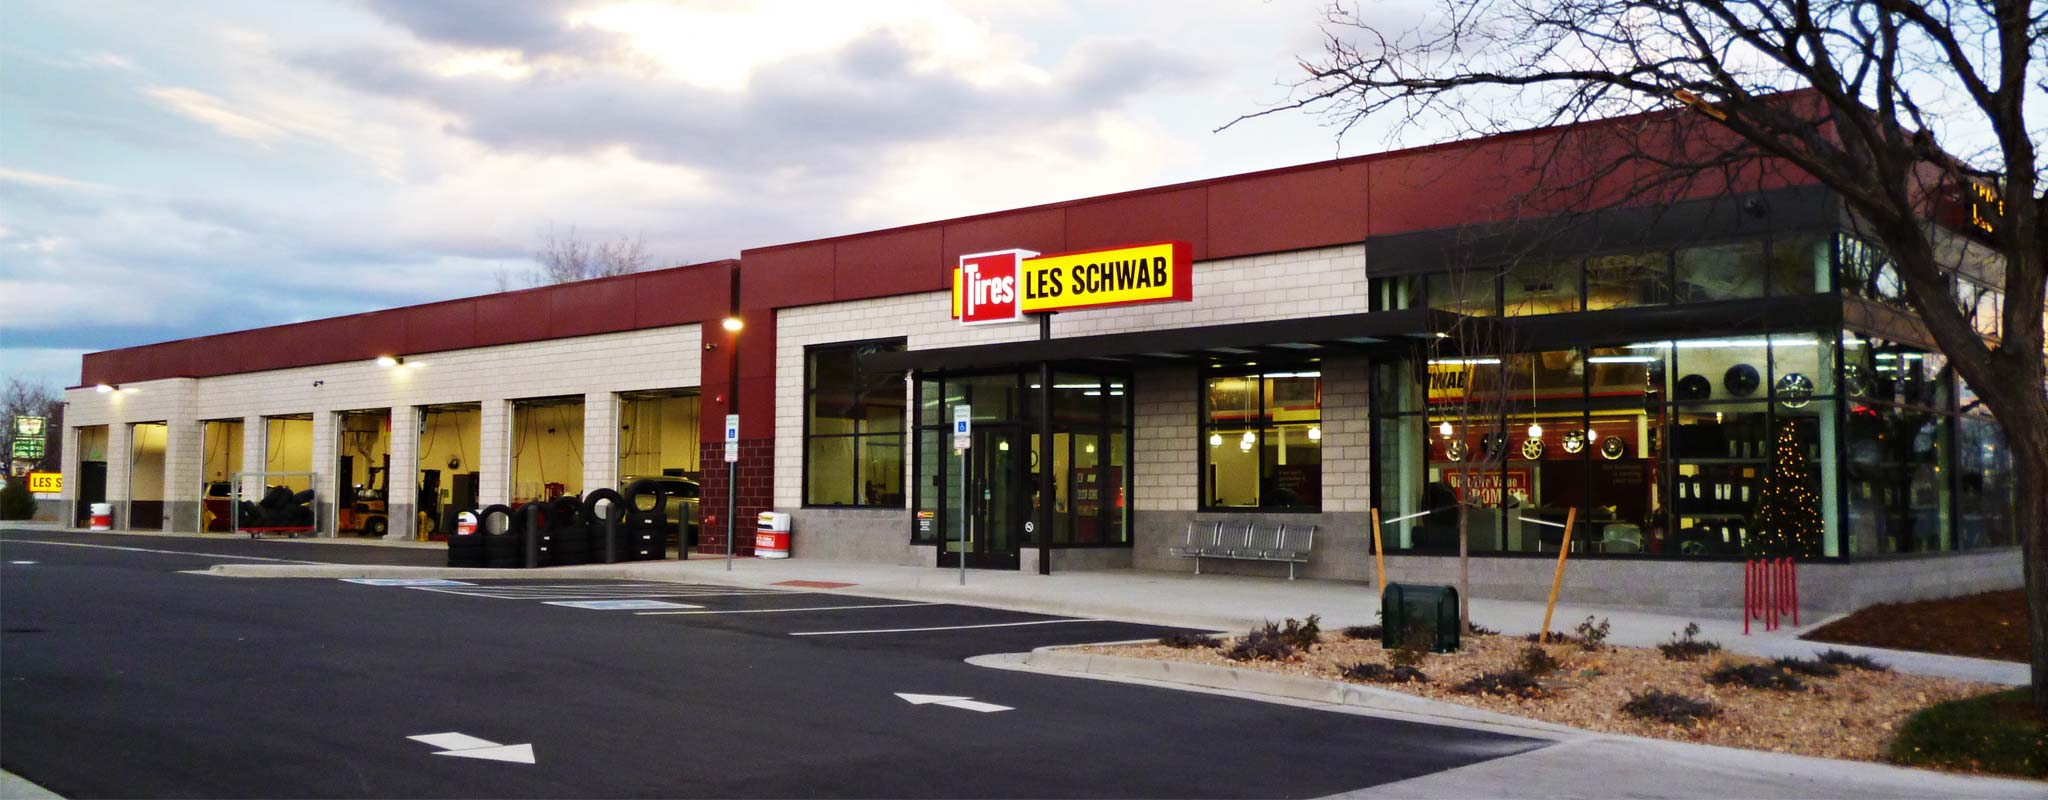 The exterior of the Federal Boulevard Les Schwab in Denver.